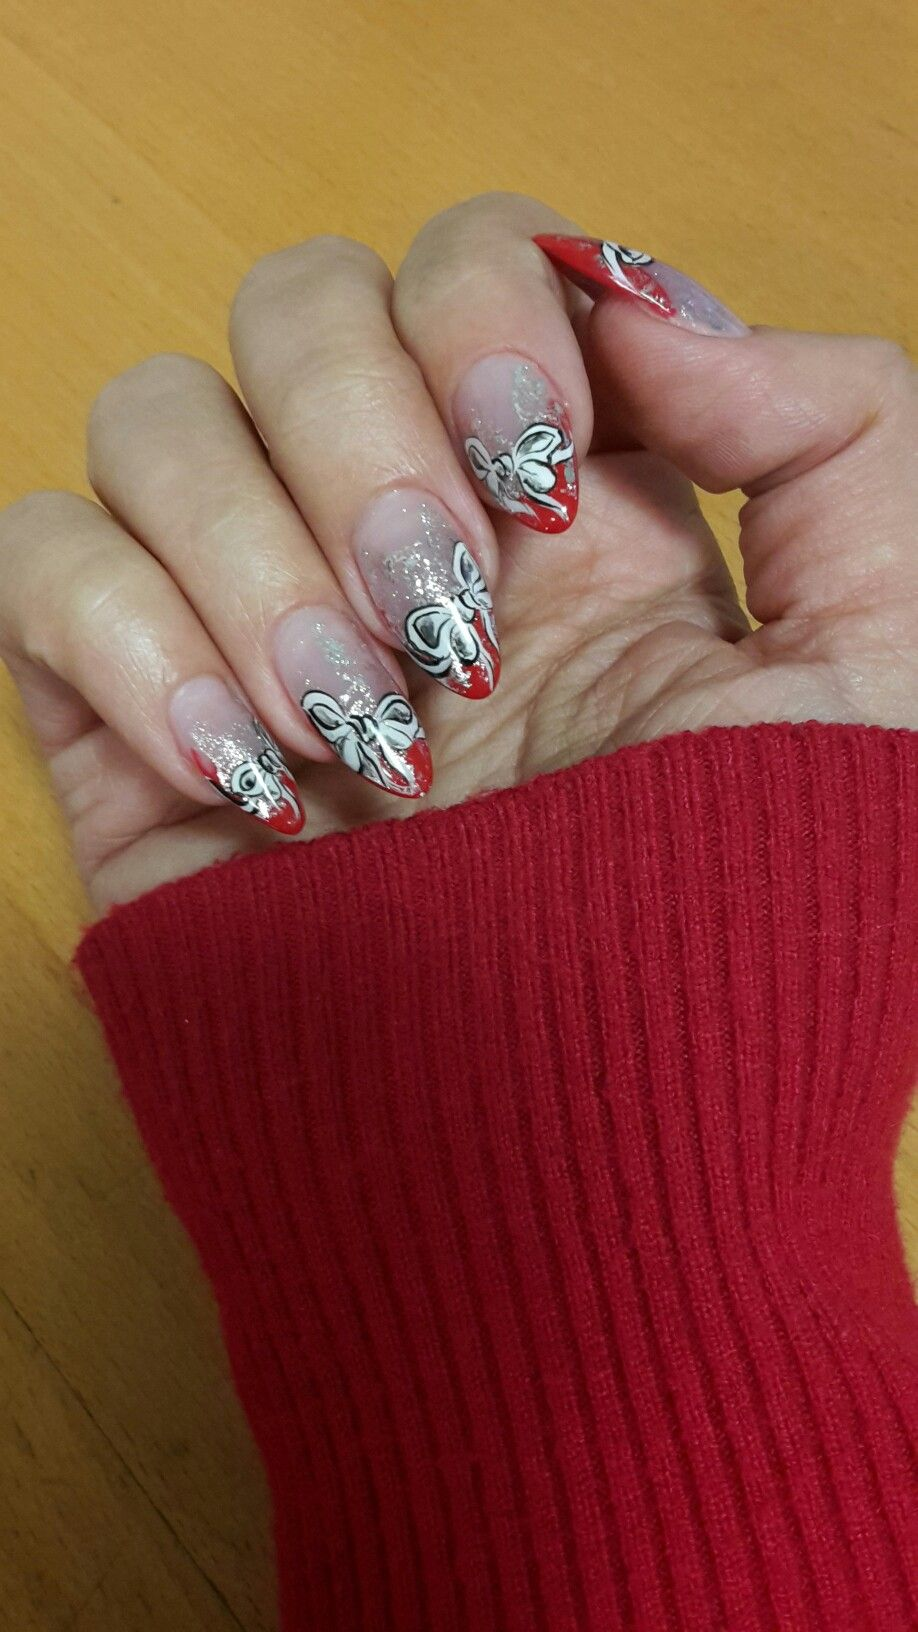 Almond Nails Red French White Bow Nail Art Silver Foil Xmas Idea